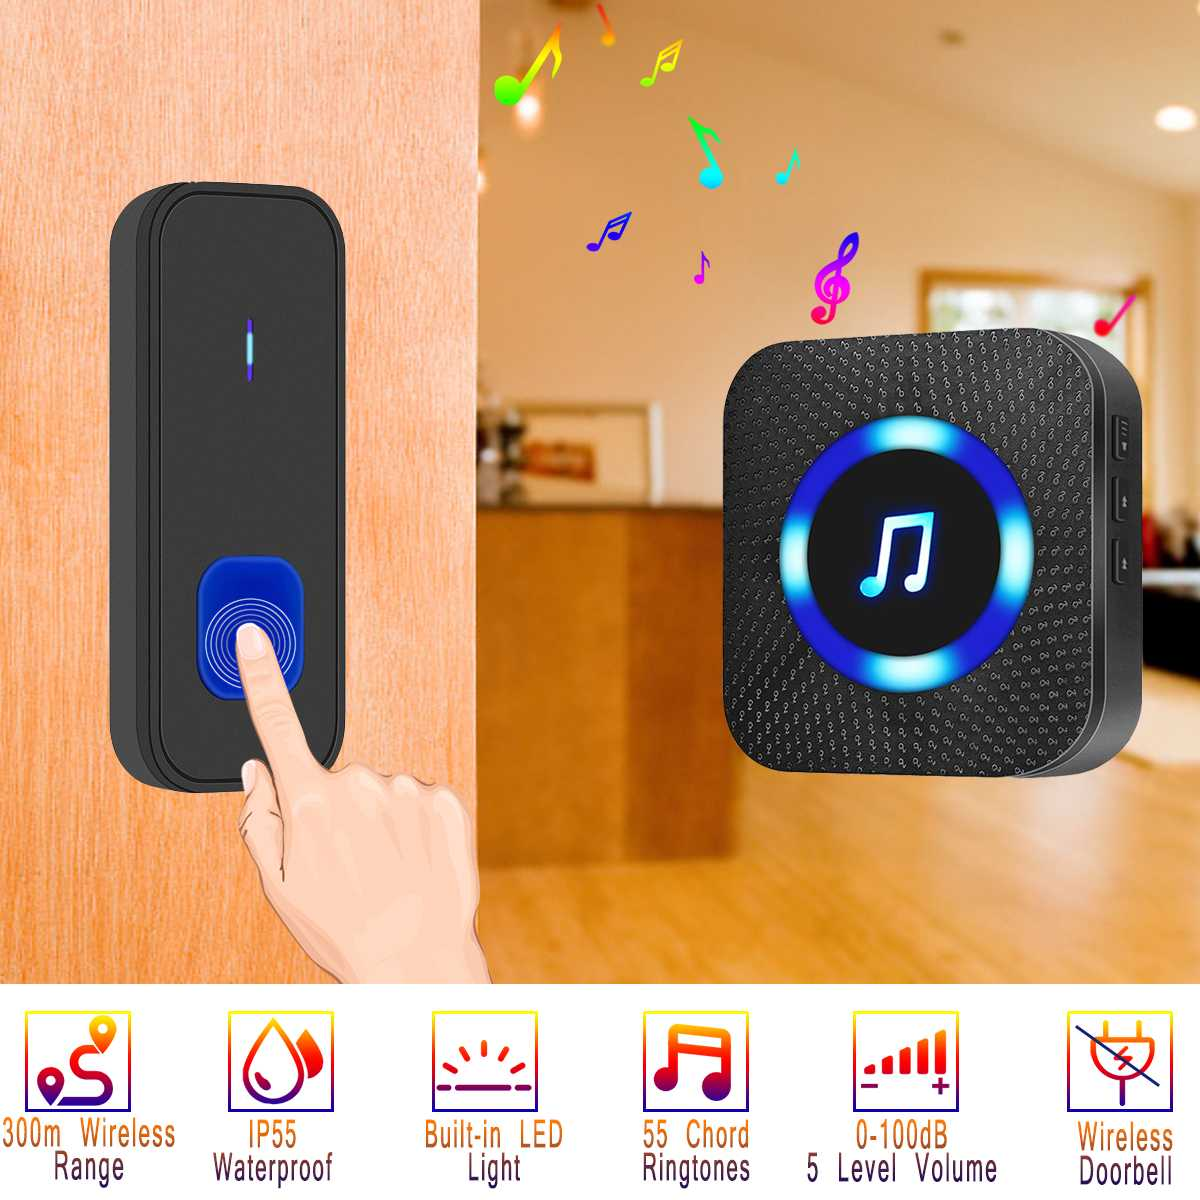 Doorbell Wireless Led Flash Waterproof Door Bell Cordless 300m Range 55 Chime Doorbell Uk/eu/us Plug For Villas Hotels Schools 5-level Preventing Hairs From Graying And Helpful To Retain Complexion Security & Protection